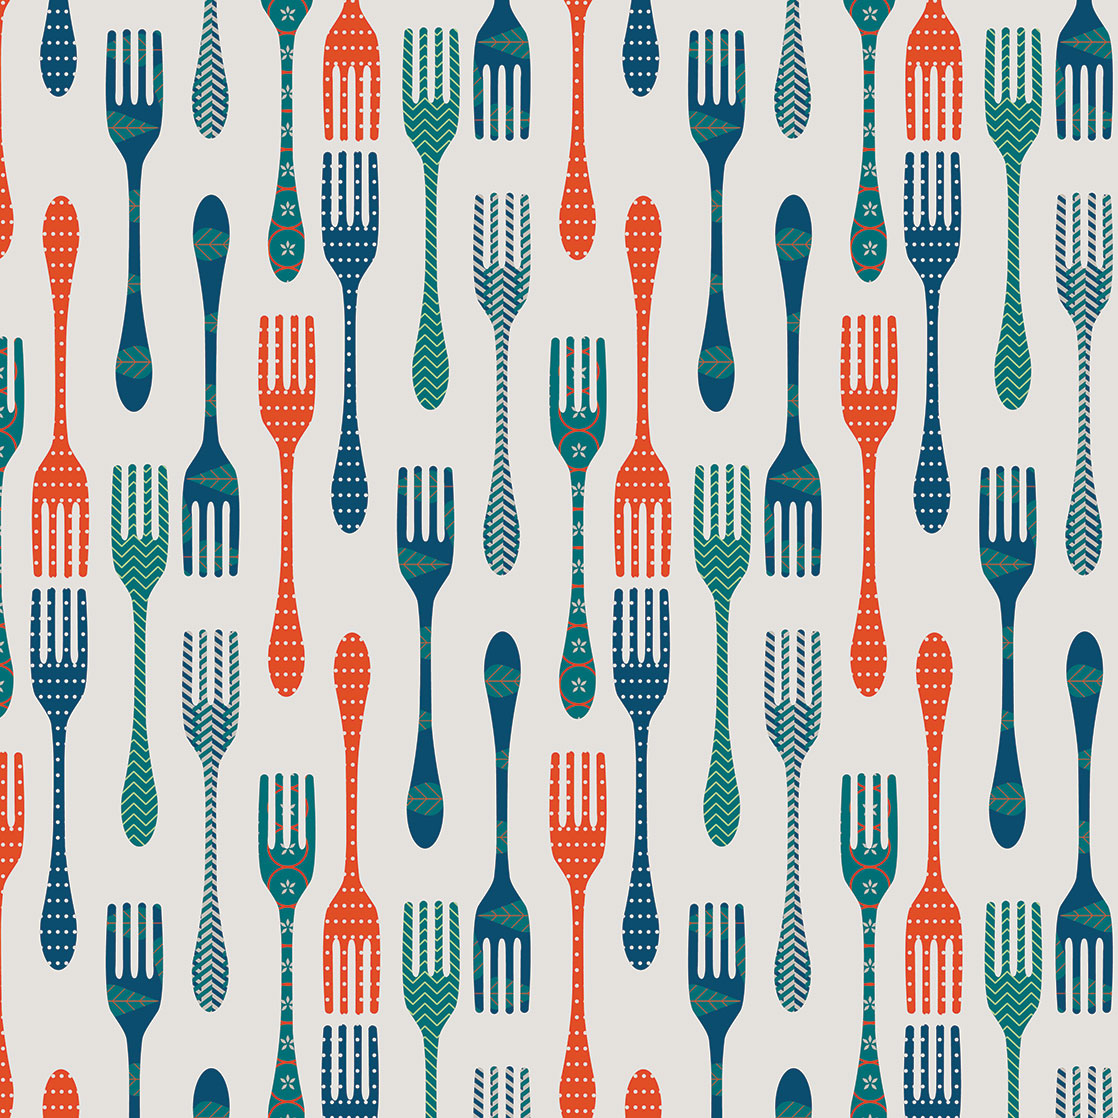 Owl Creek Kitchen - Pattern 12